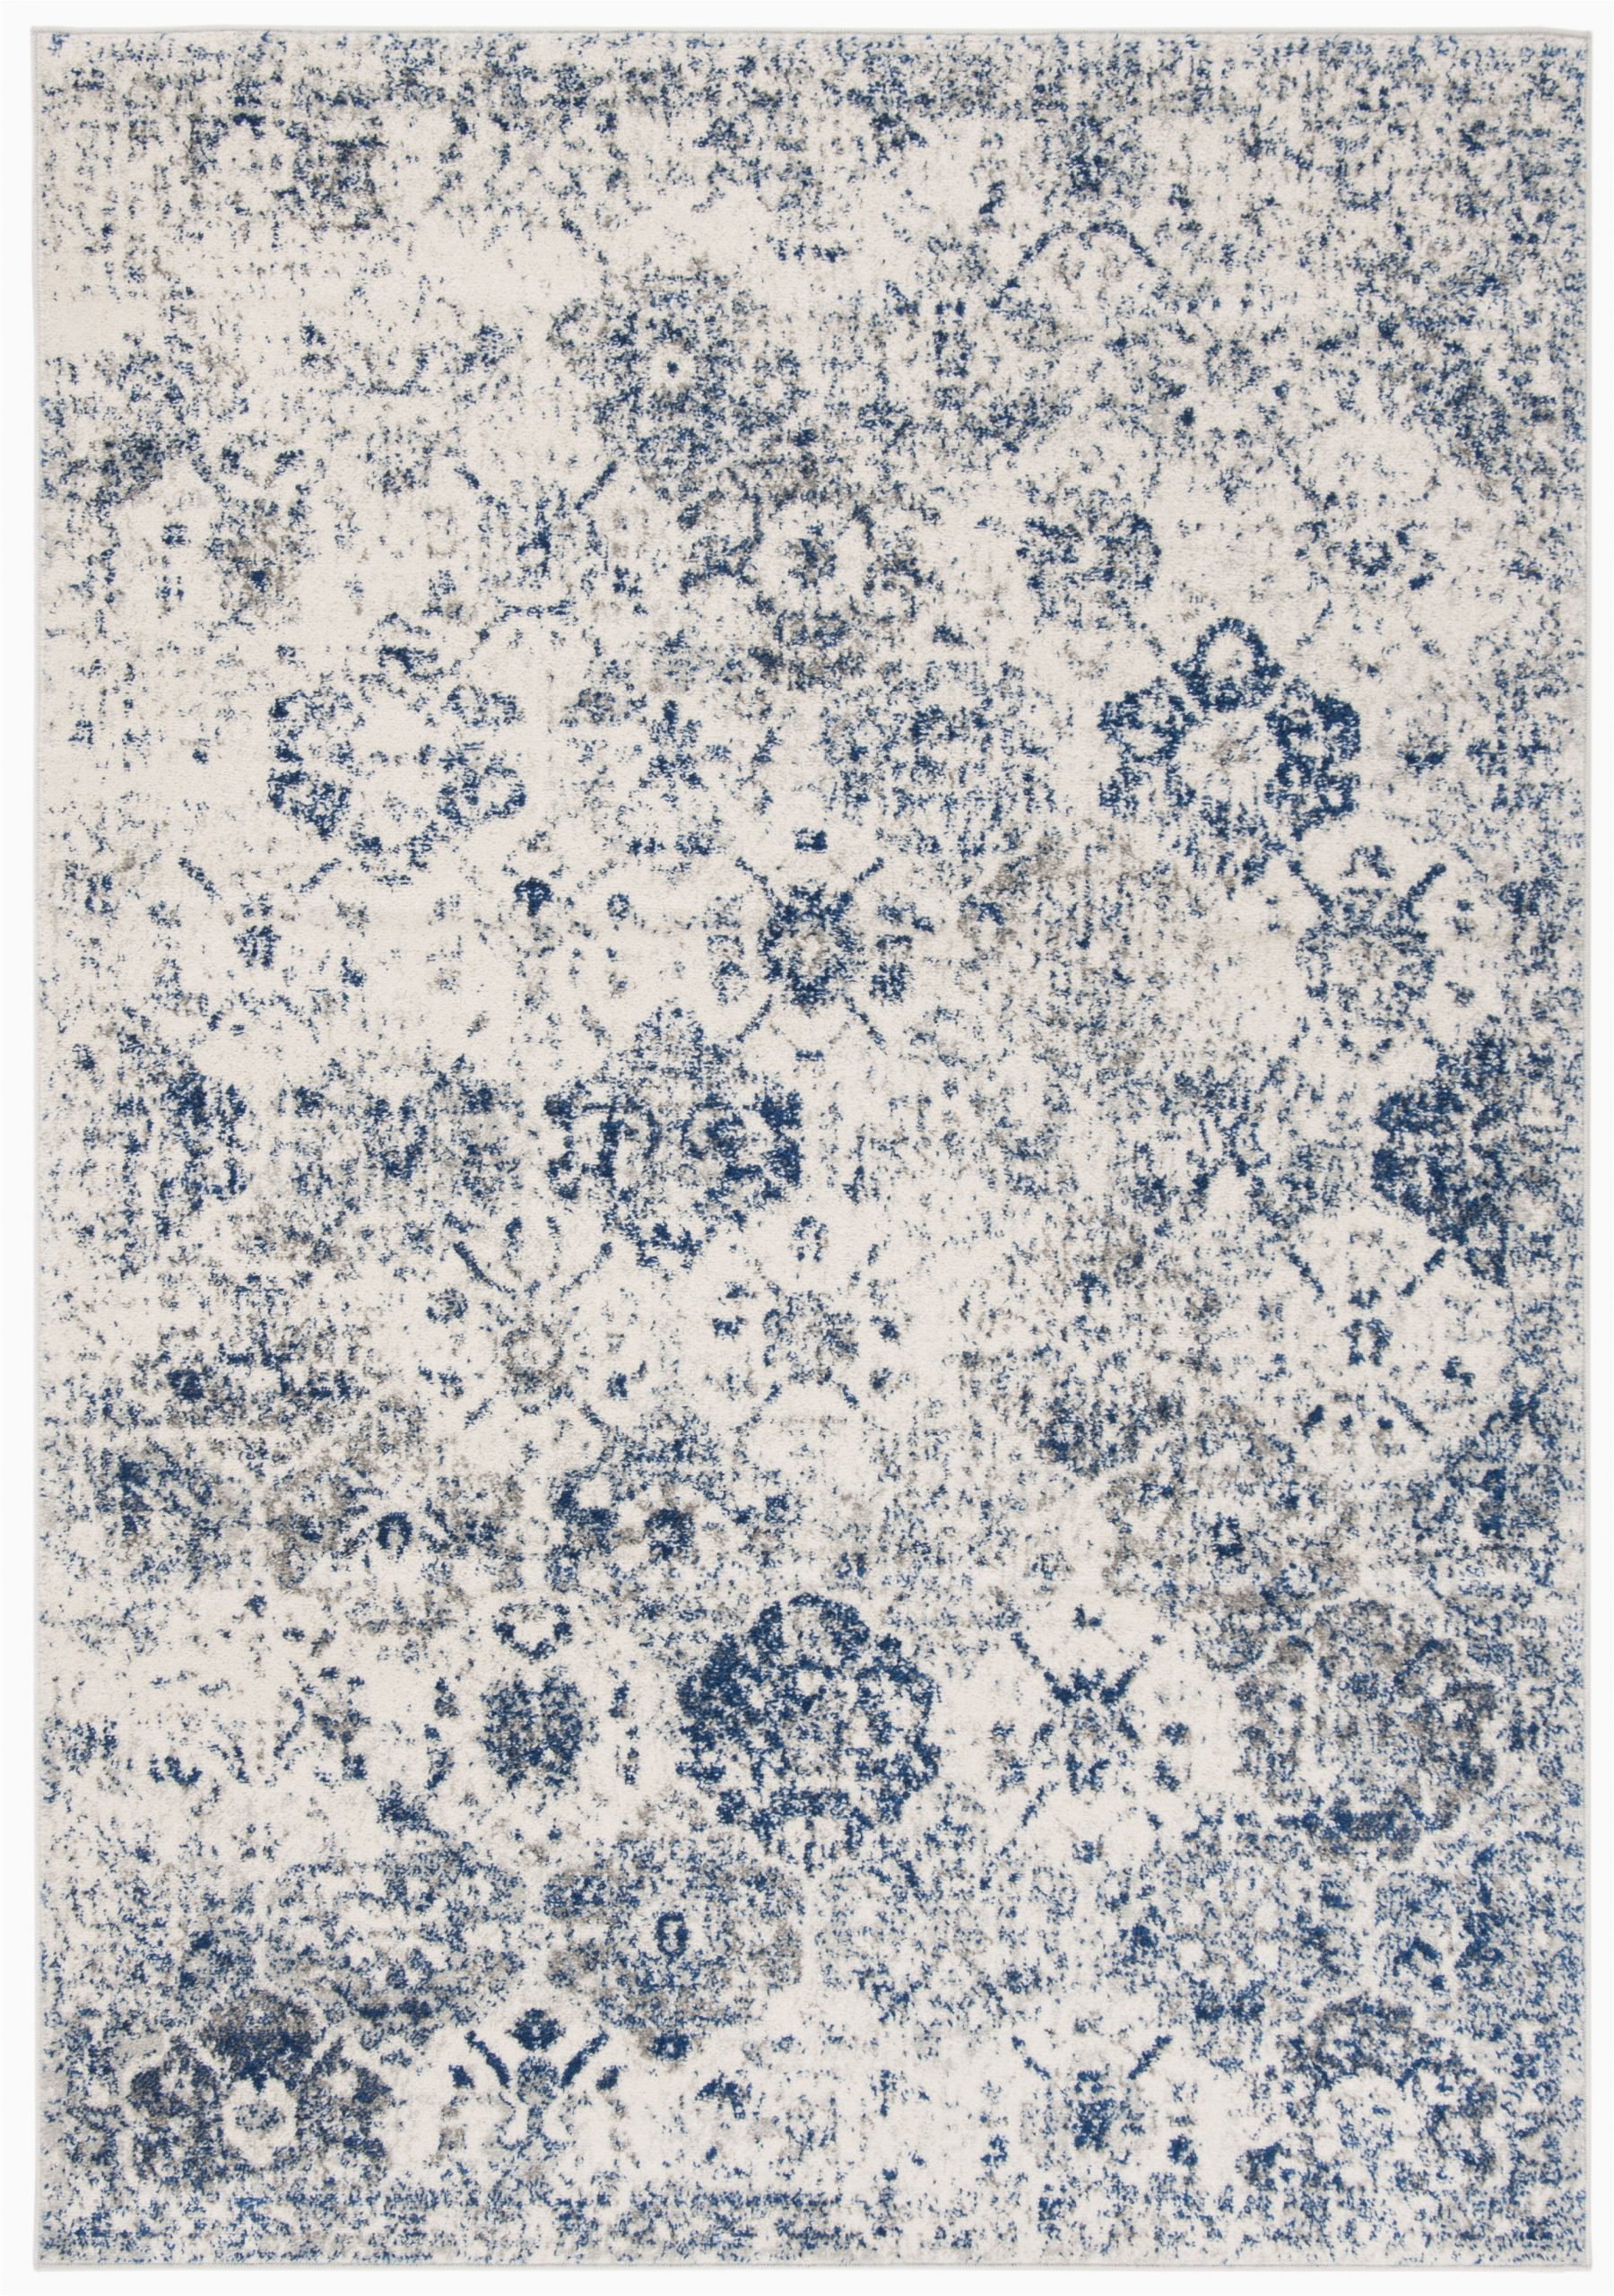 Wayfair Rugs Blue and White Ophelia & Co Macy oriental White Royal Blue area Rug